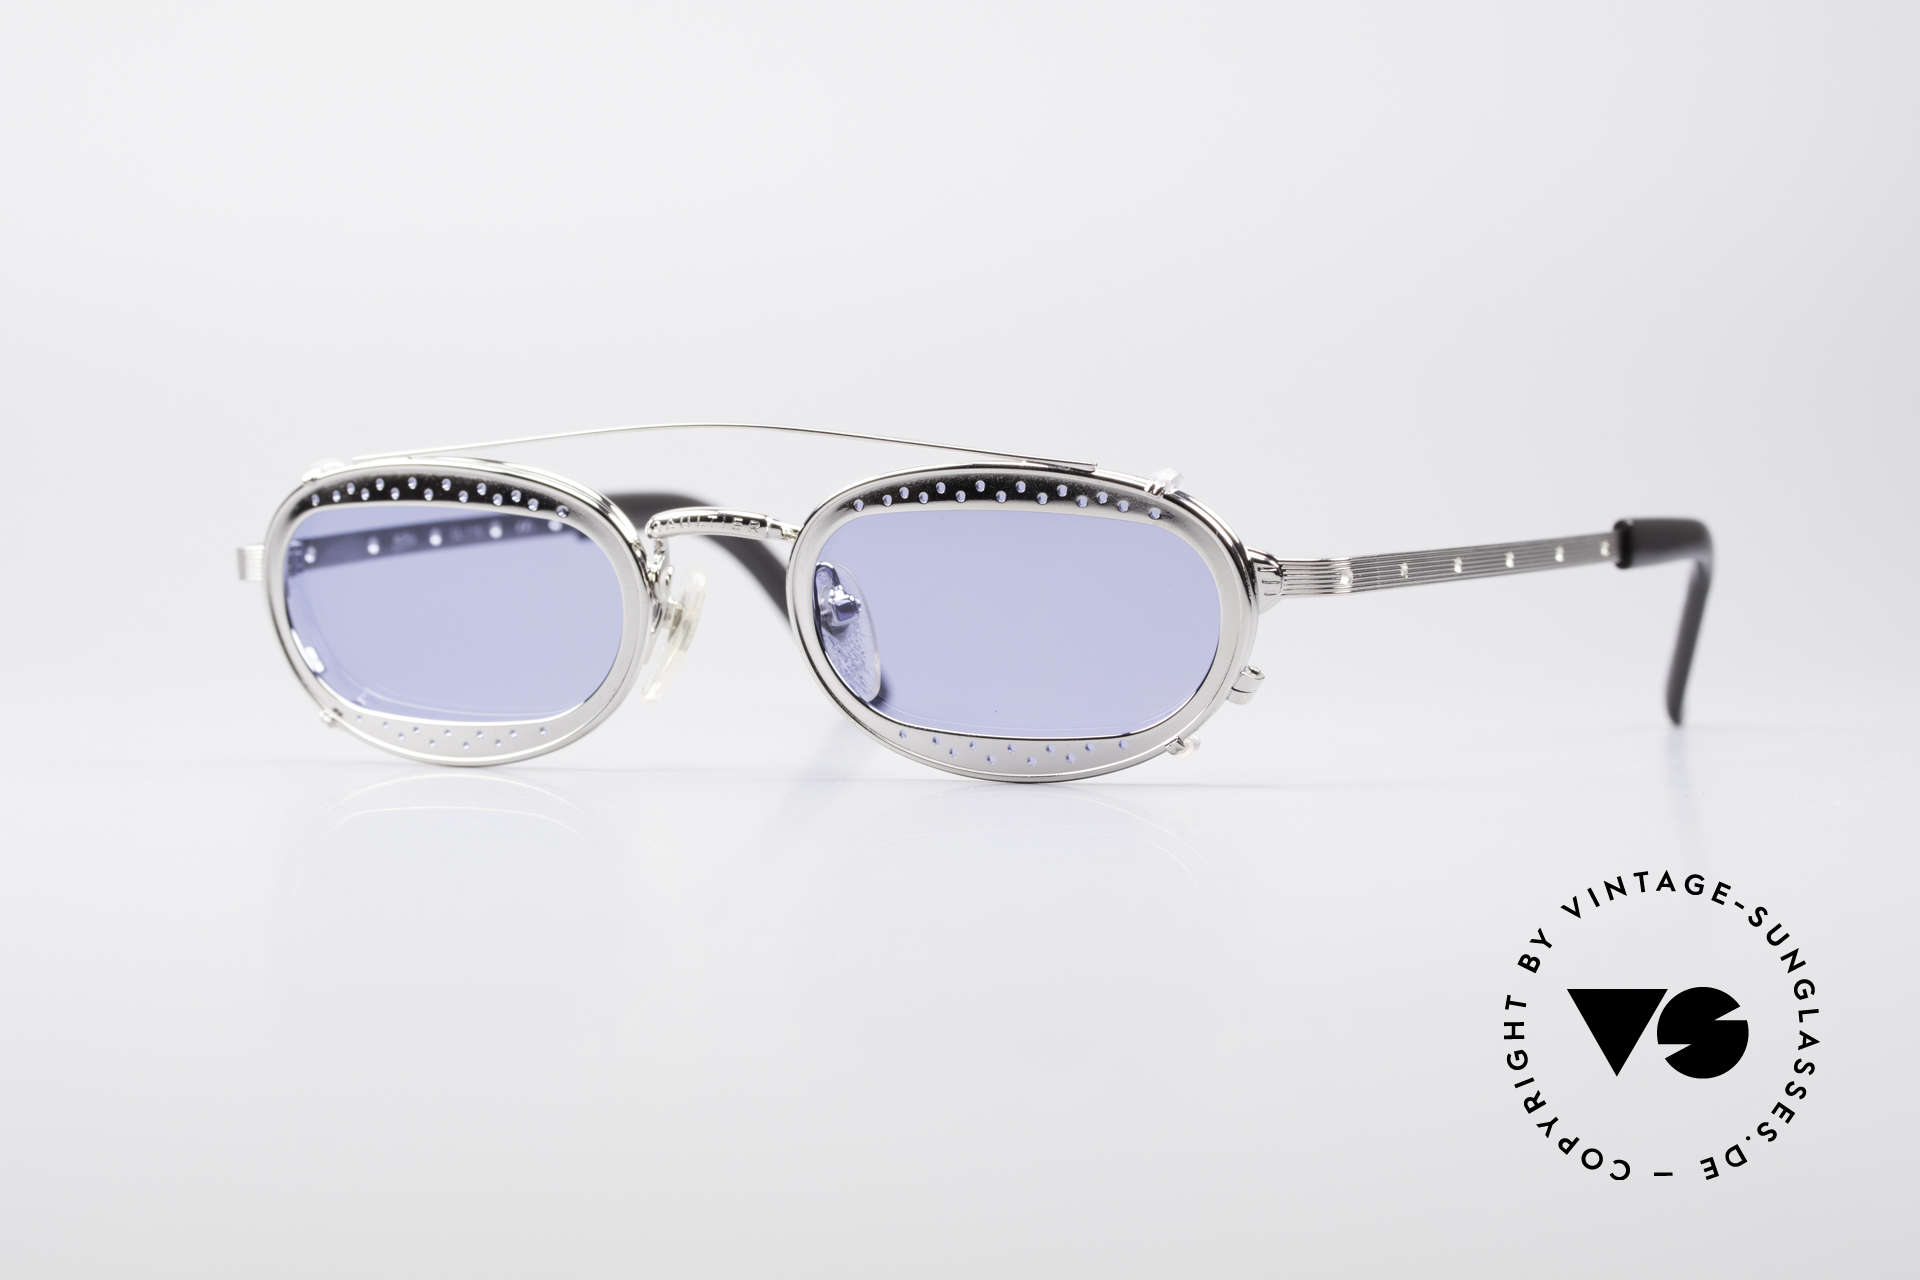 Jean Paul Gaultier 56-7116 Limited Vintage Glasses, LIMITED designer sunglasses by JEAN PAUL GAULTIER, Made for Men and Women